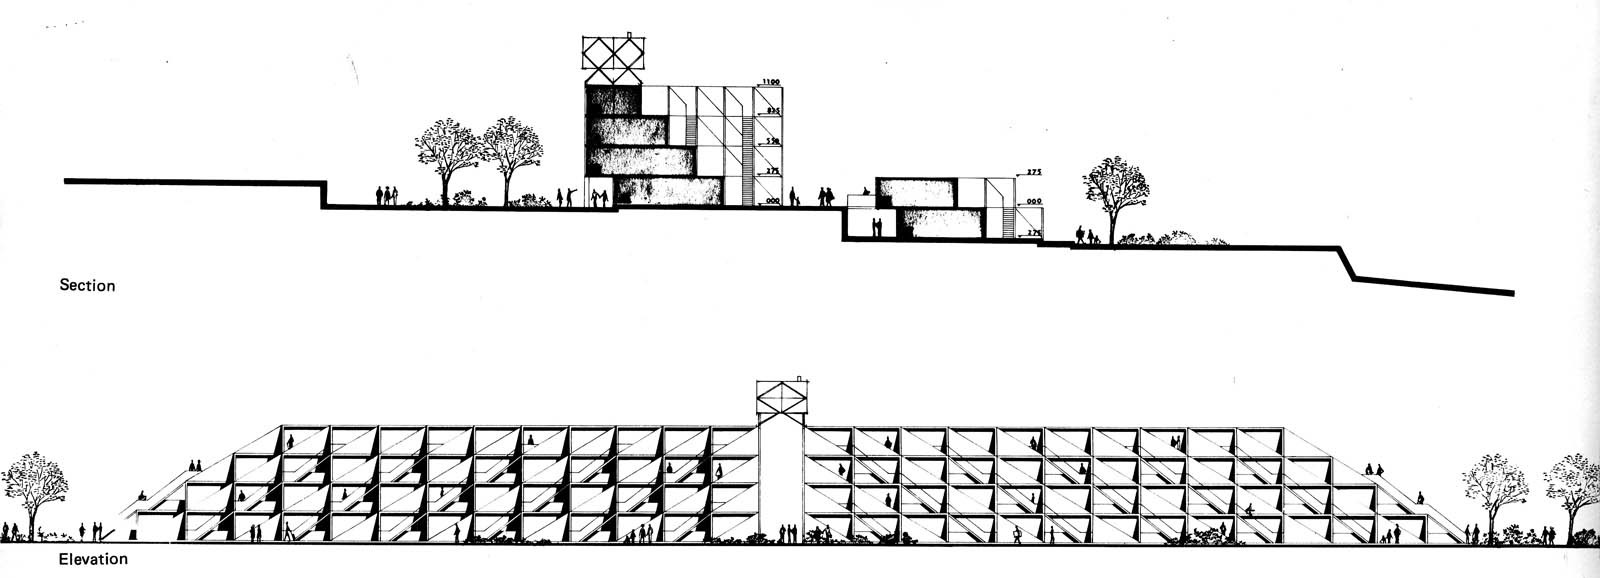 Section and elevation views of the site. (Plan courtesy Arieh Sharon office)